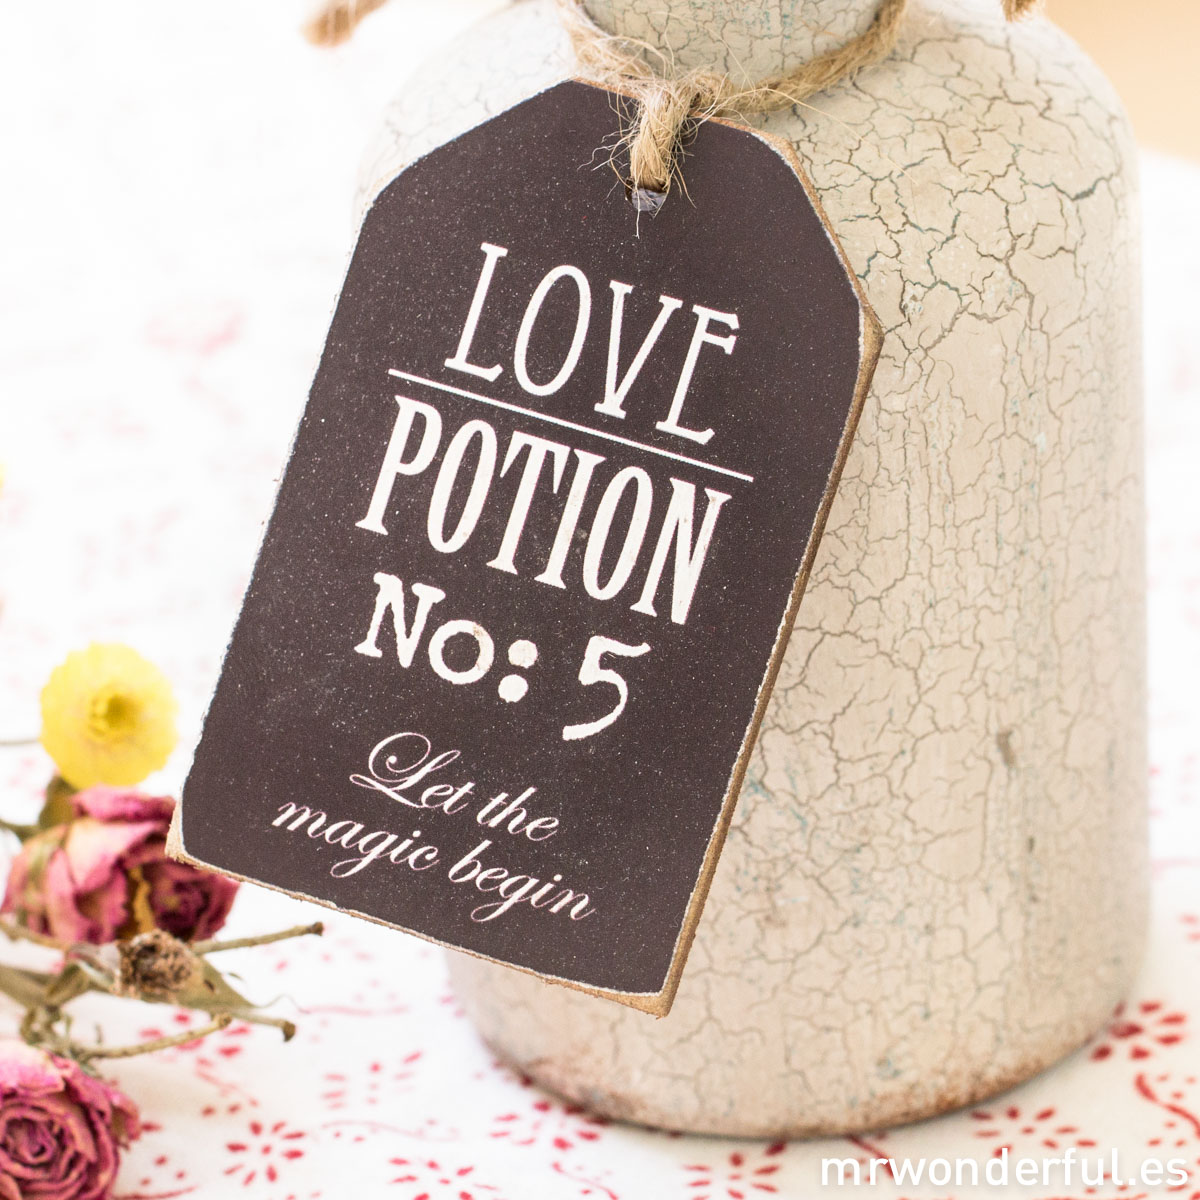 mrwonderful_690570_botella-boticario_love-pottion-6